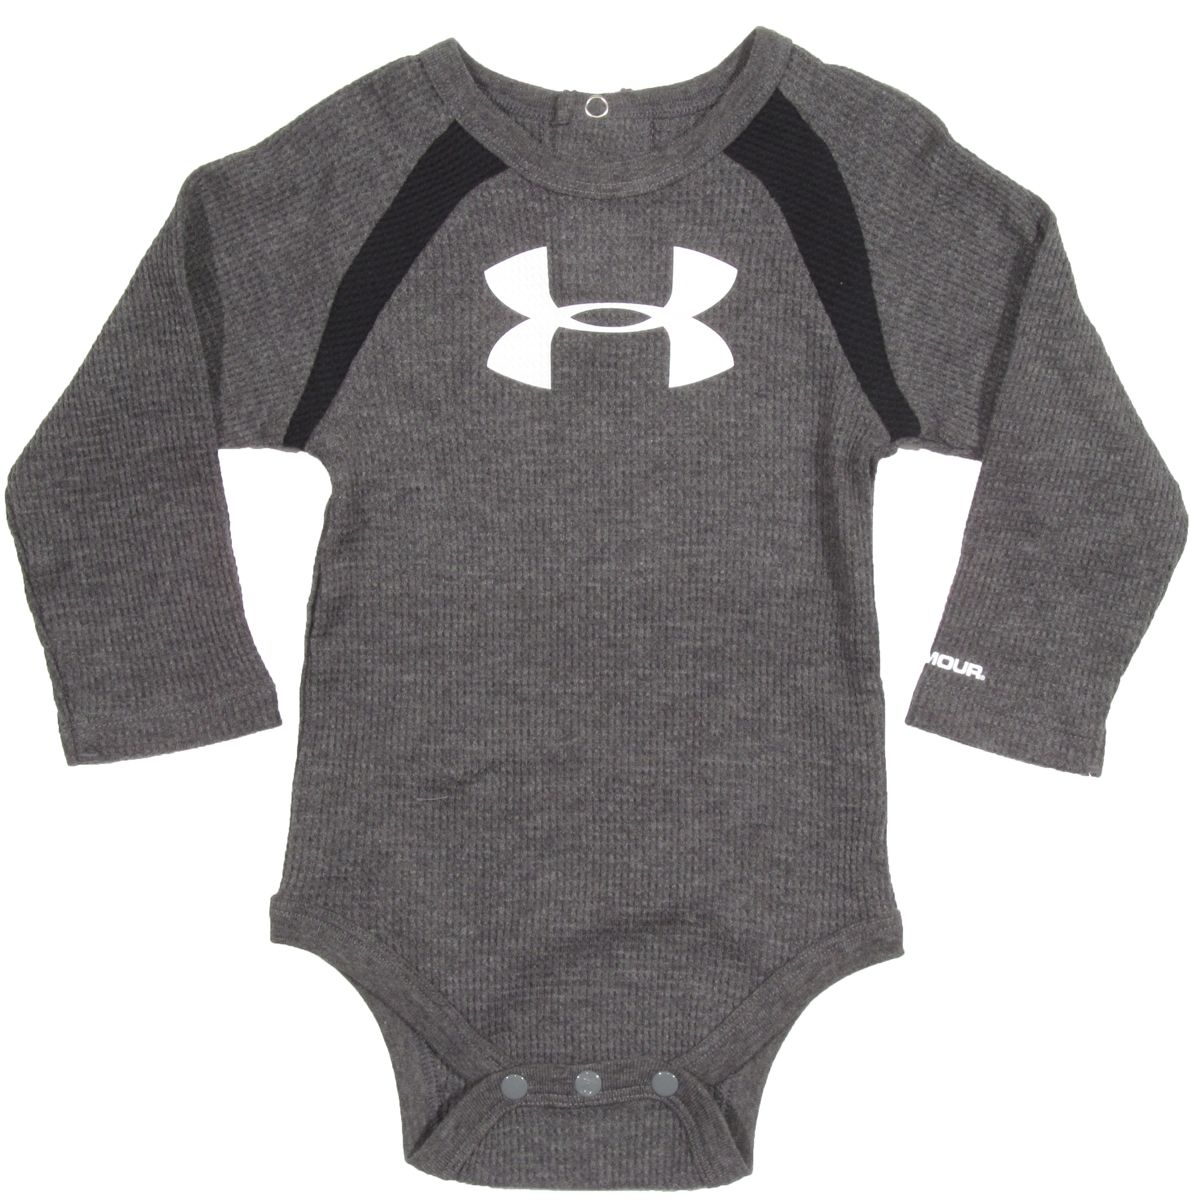 Baby Infant Boy Under Armour One Piece Snap Bodysuit Shirt